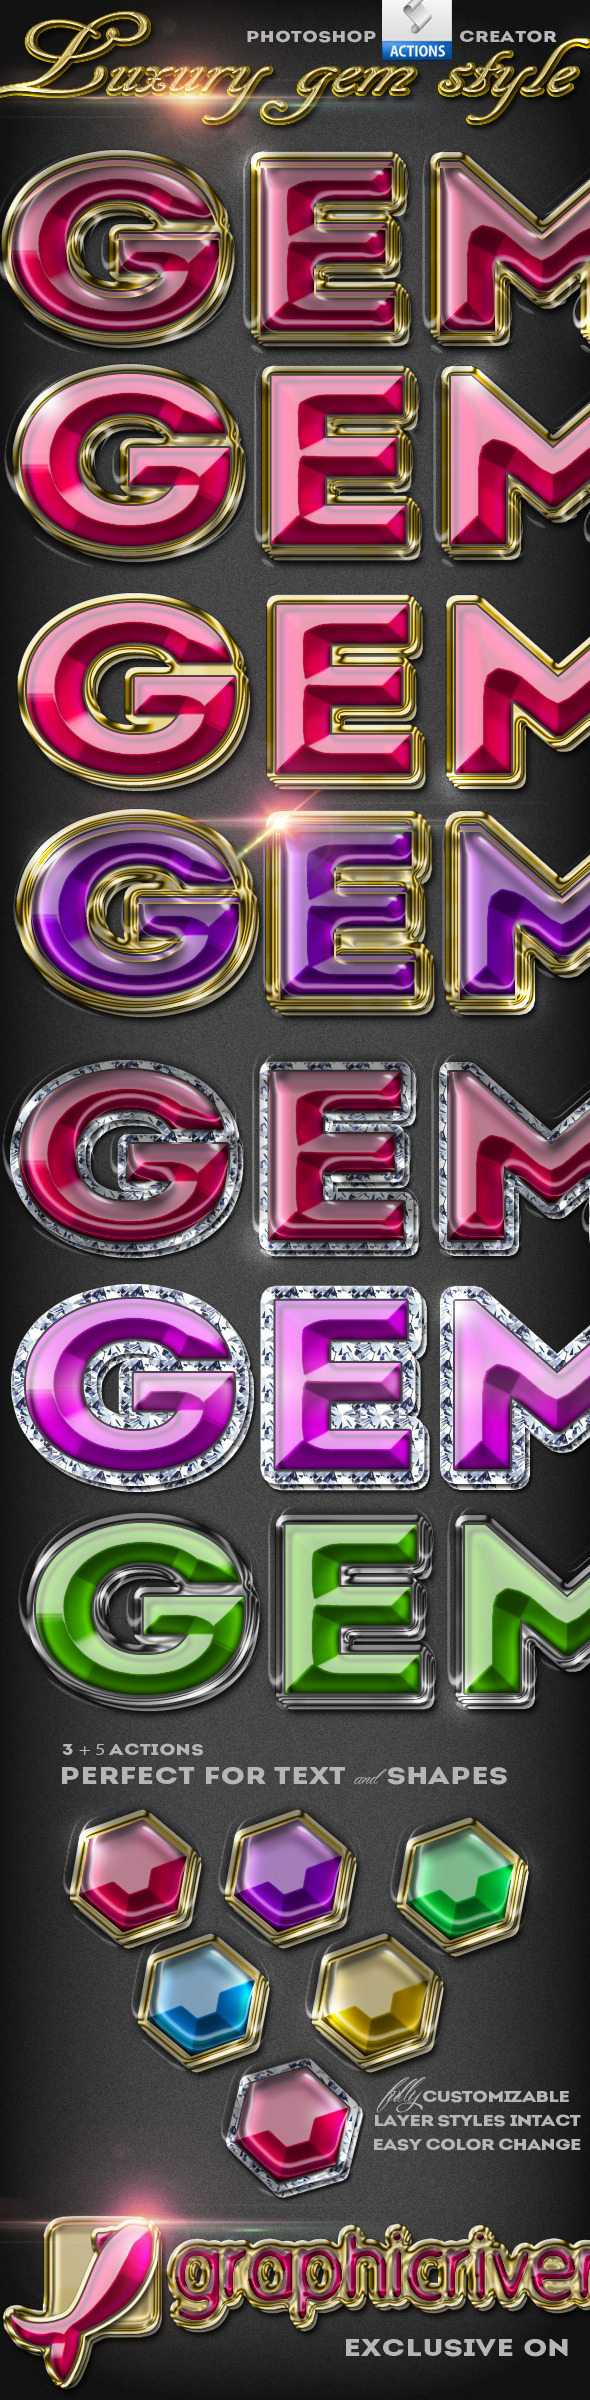 Gem Style Jewelry Photoshop Creator - Text Effects Actions